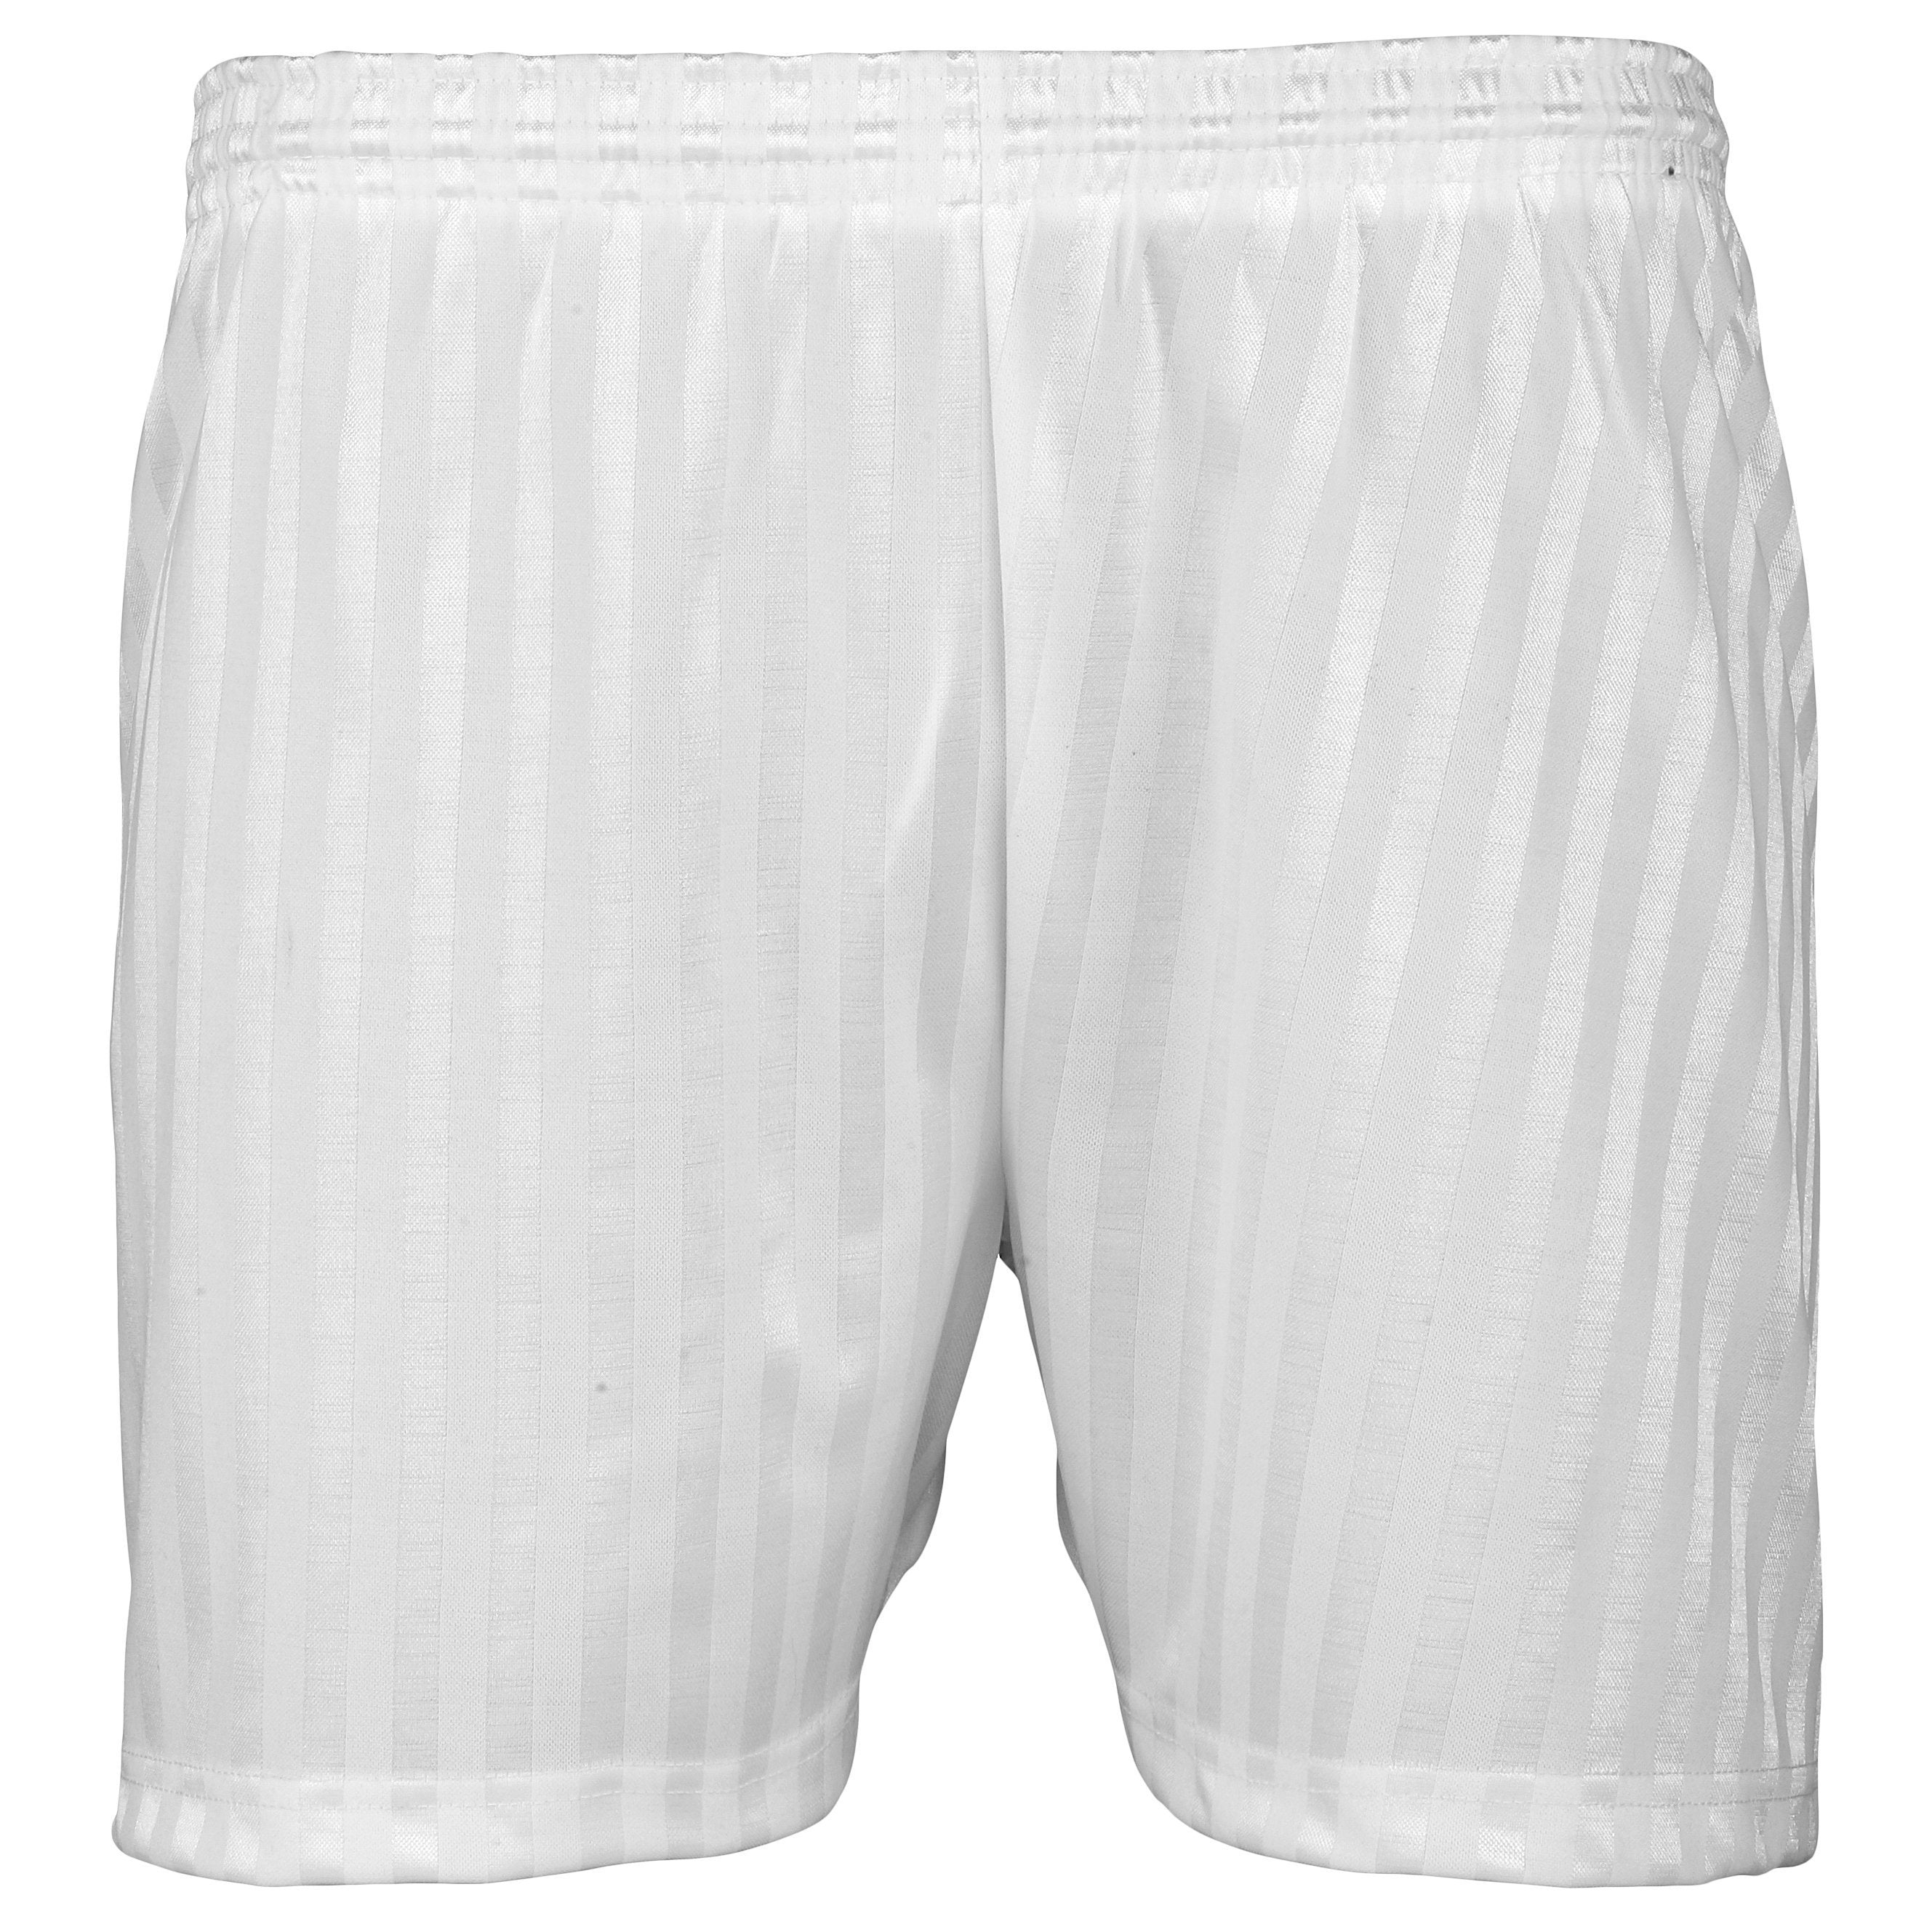 Boys Shadow Stripe Shorts Football PE School Gym Games Sports Ages 3 4 5 6 7 8 9 10 11 12 13 Years